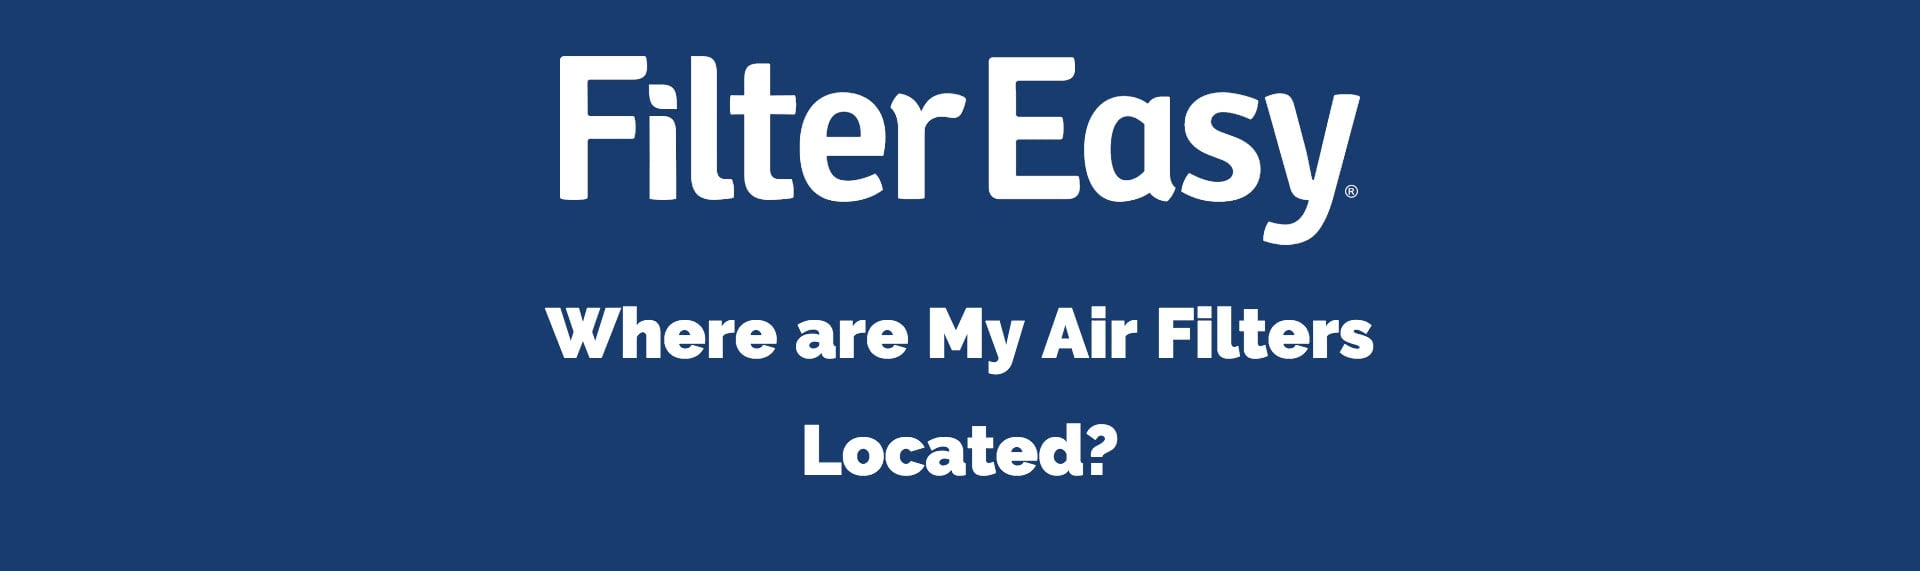 location of air filters